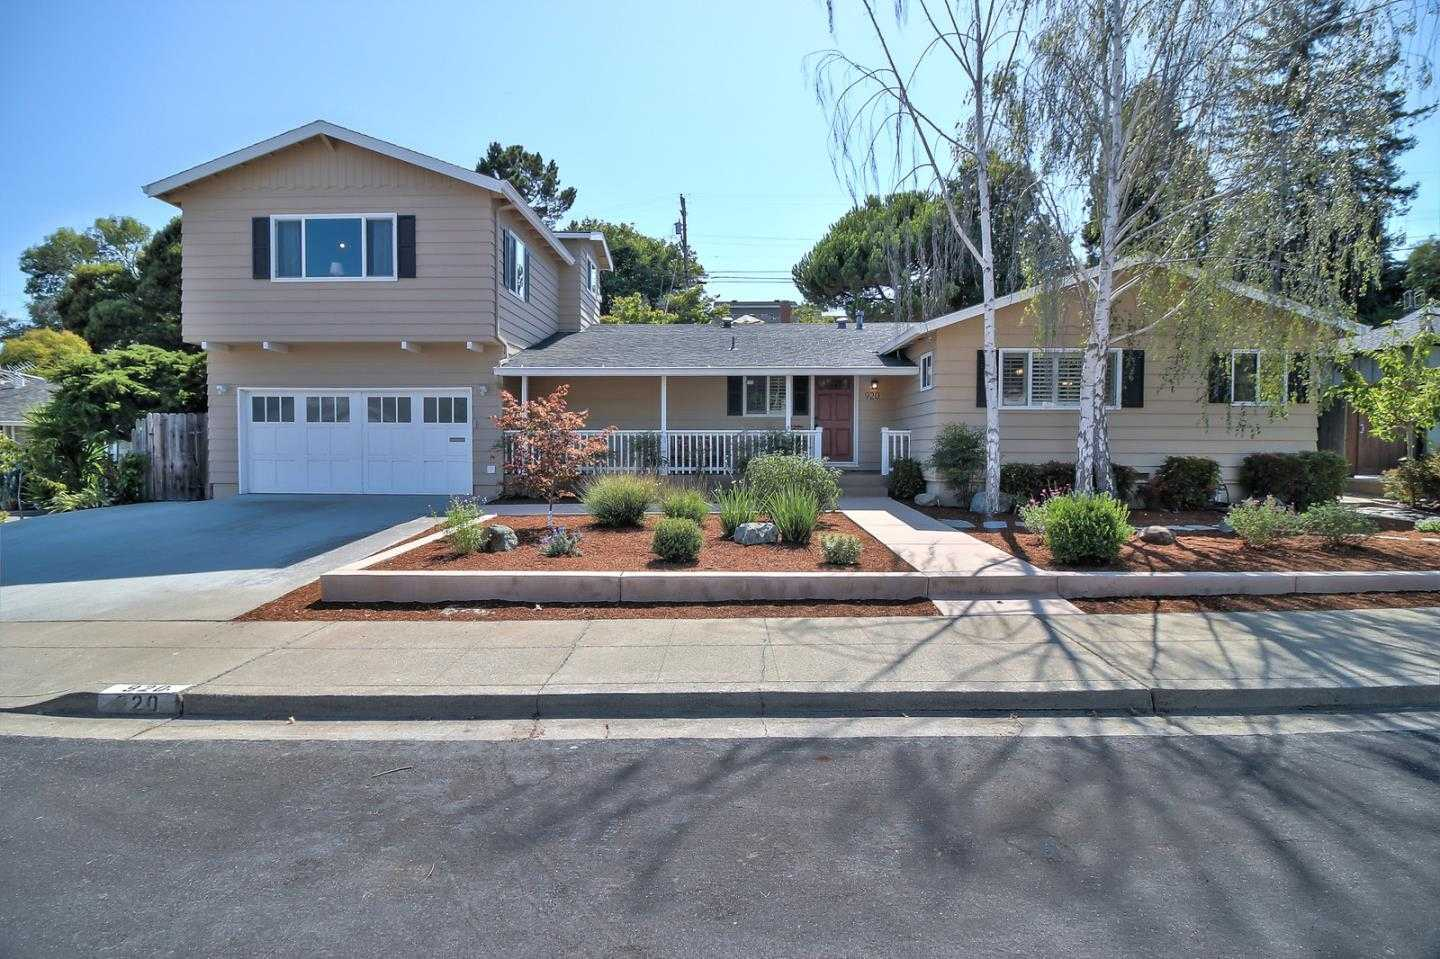 $2,099,000 - 4Br/4Ba -  for Sale in Redwood City